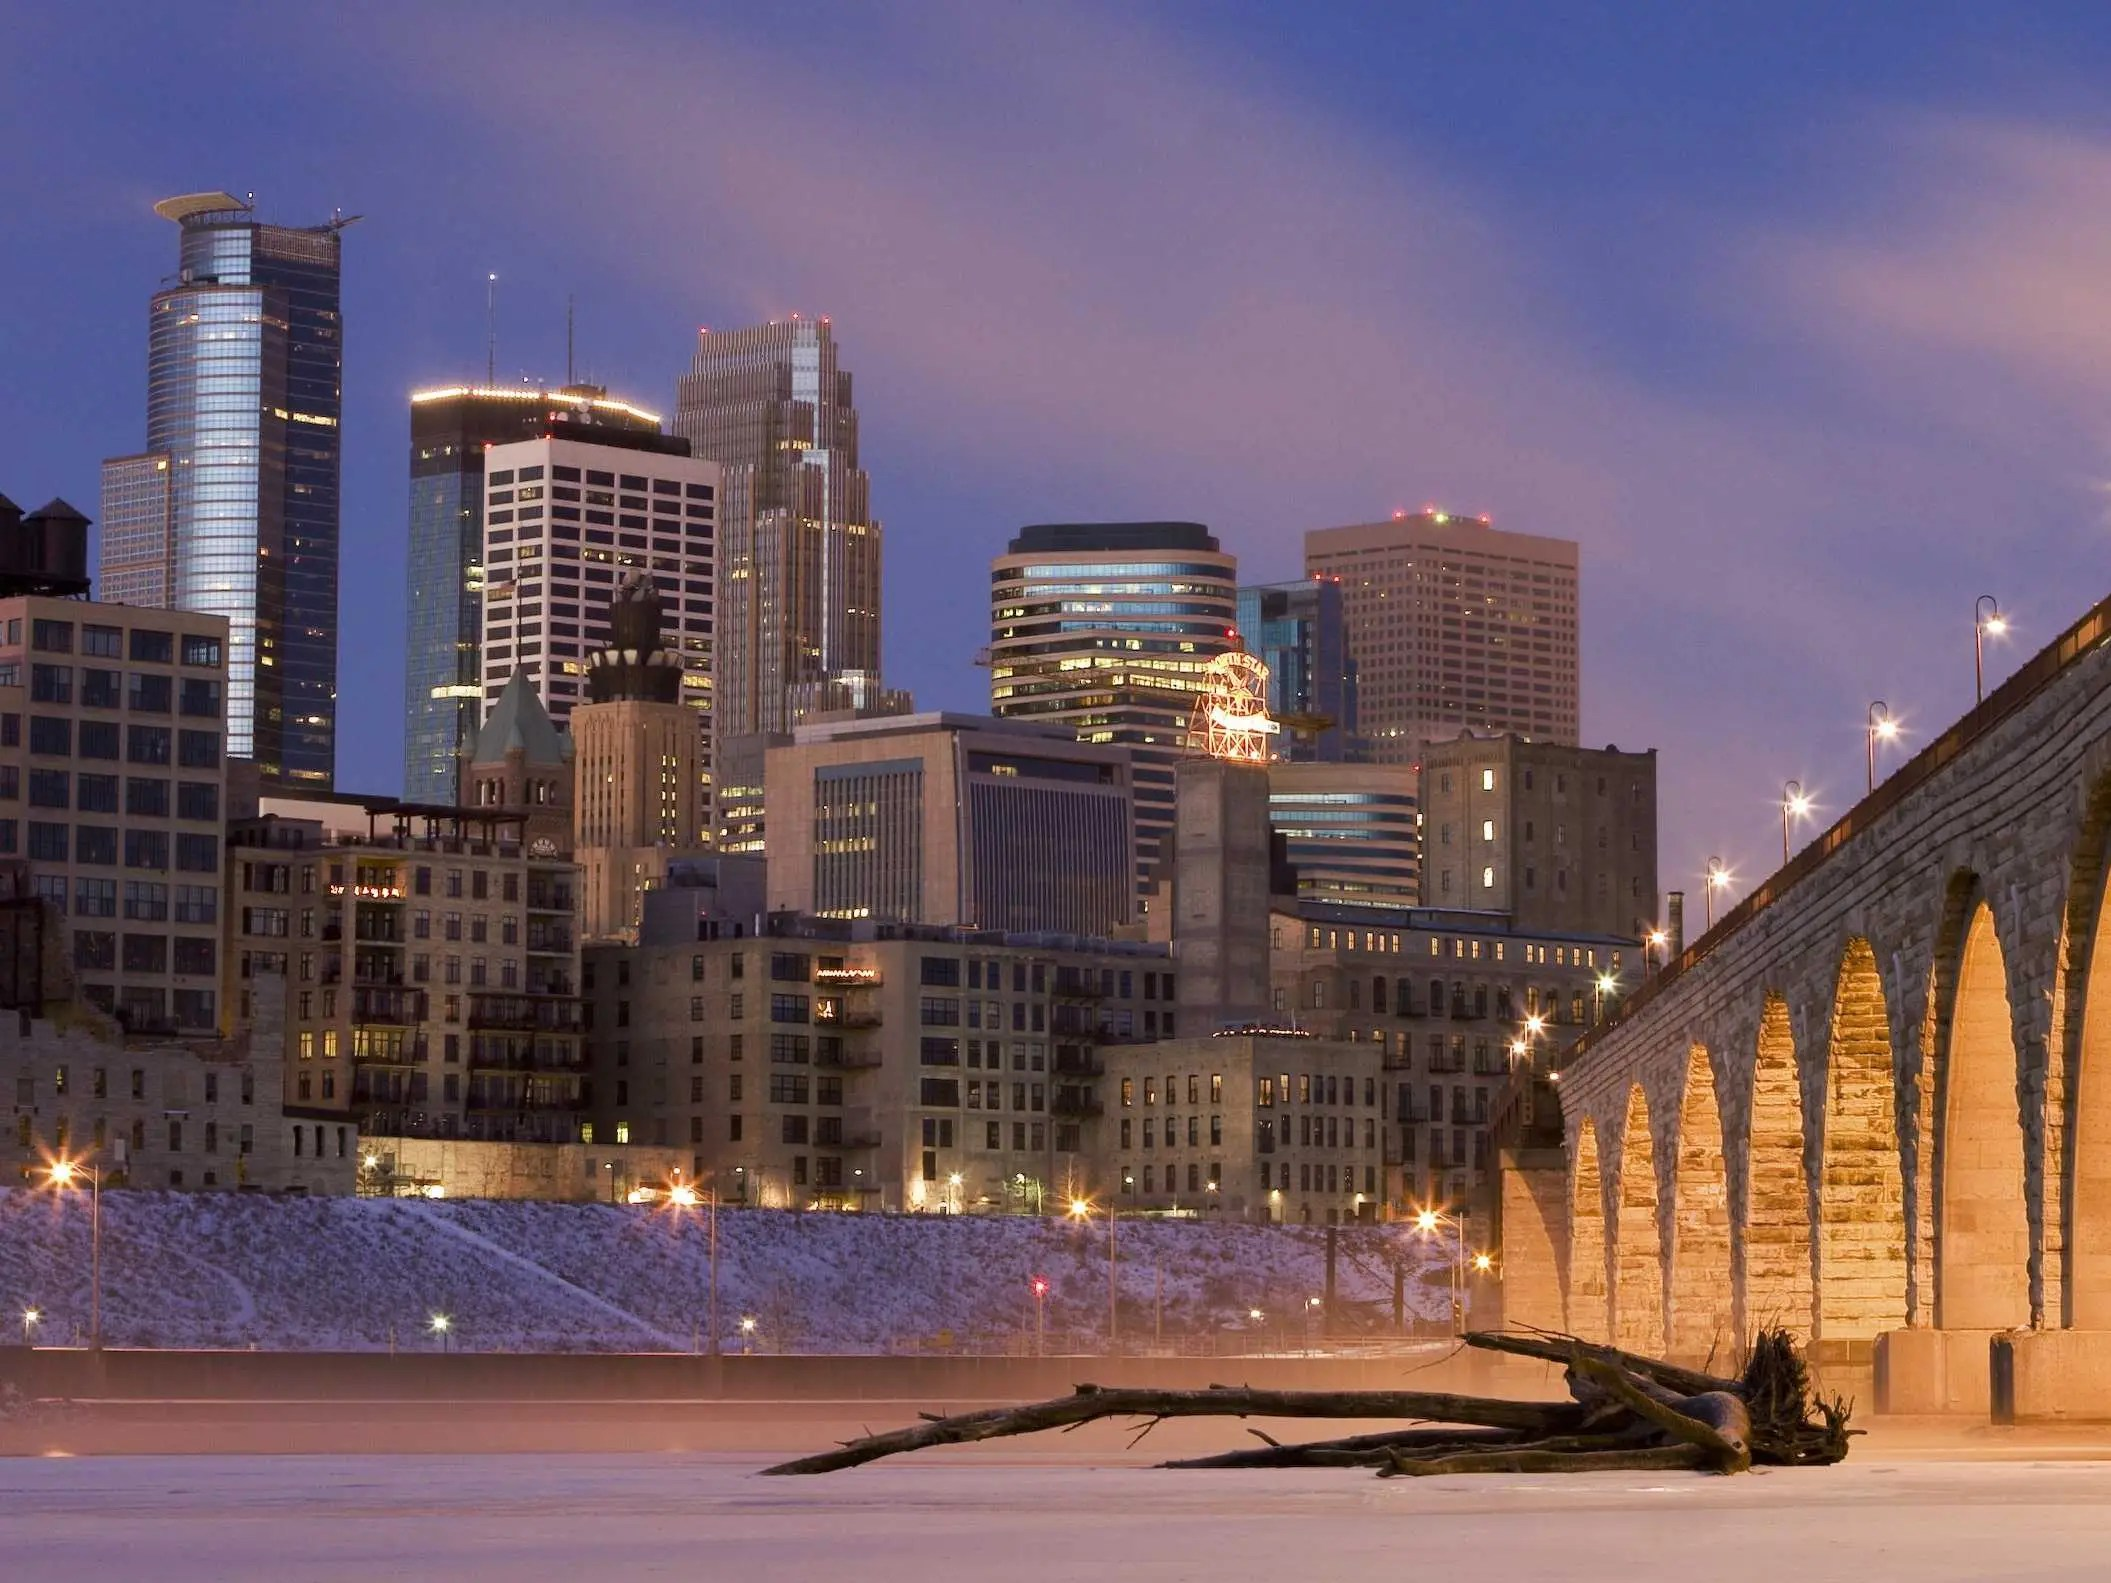 MINNEAPOLIS: You'd have to earn at least $33,800 to buy an average home.